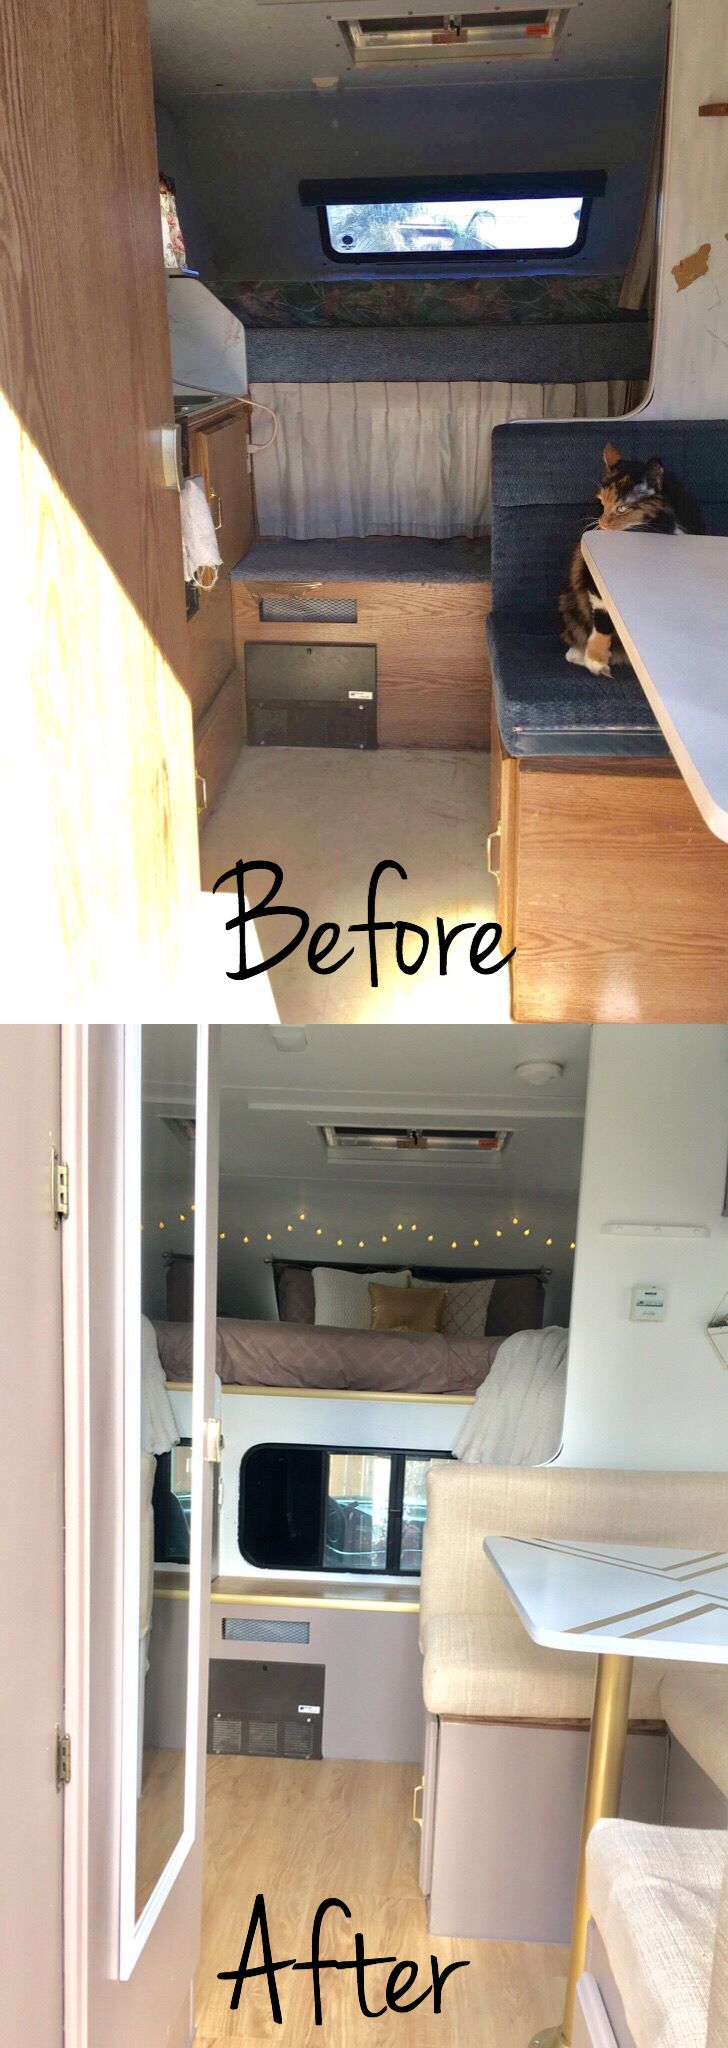 Truck camper trailer remodel before and after @insta_sara